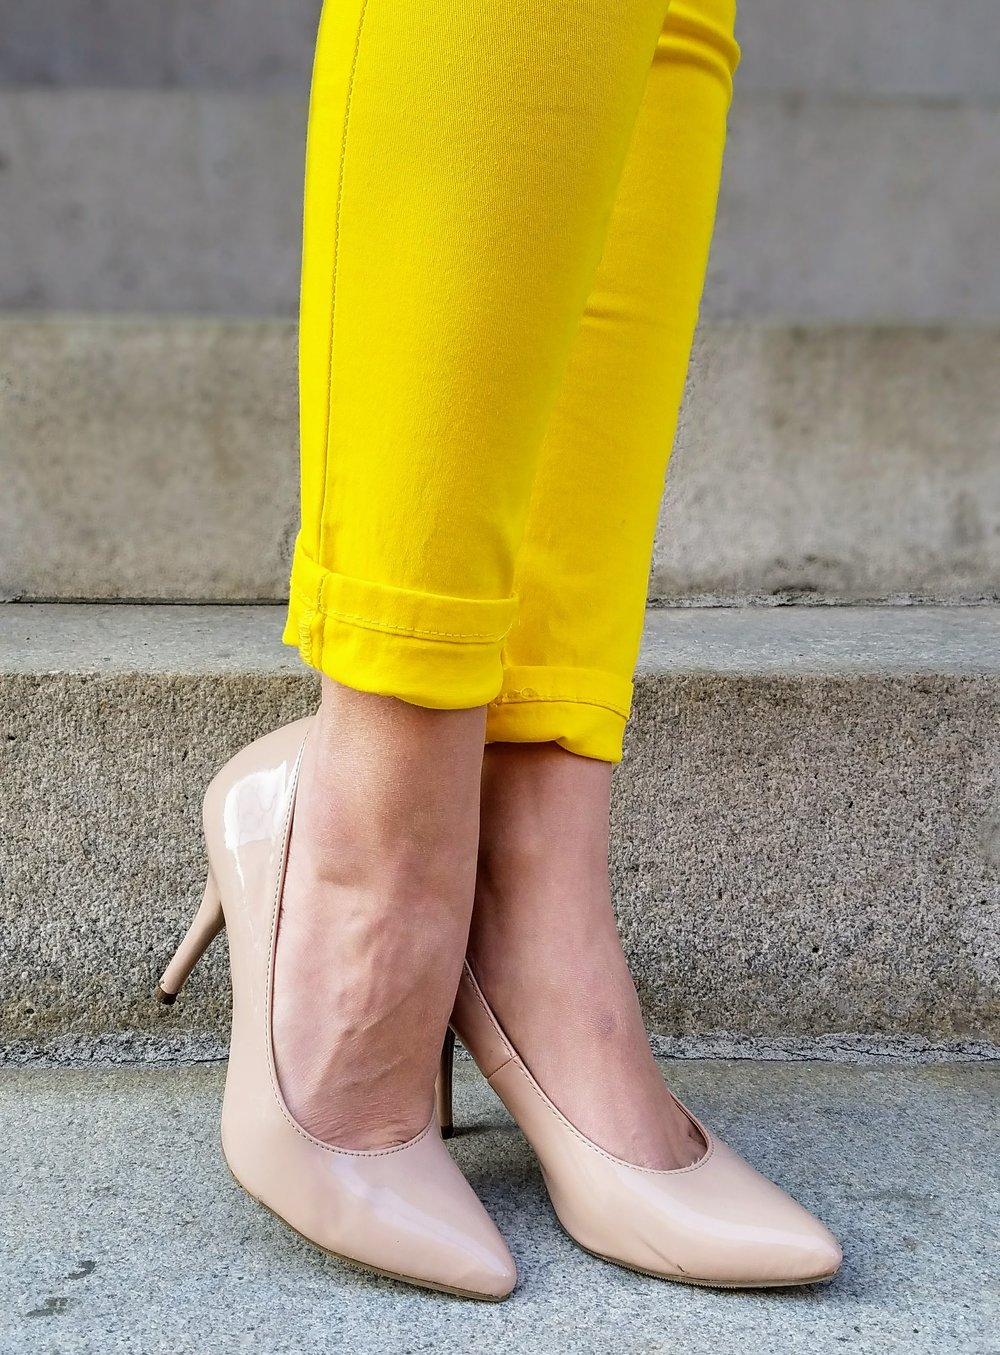 Nude heels and yellow jeans closeup for a blog.